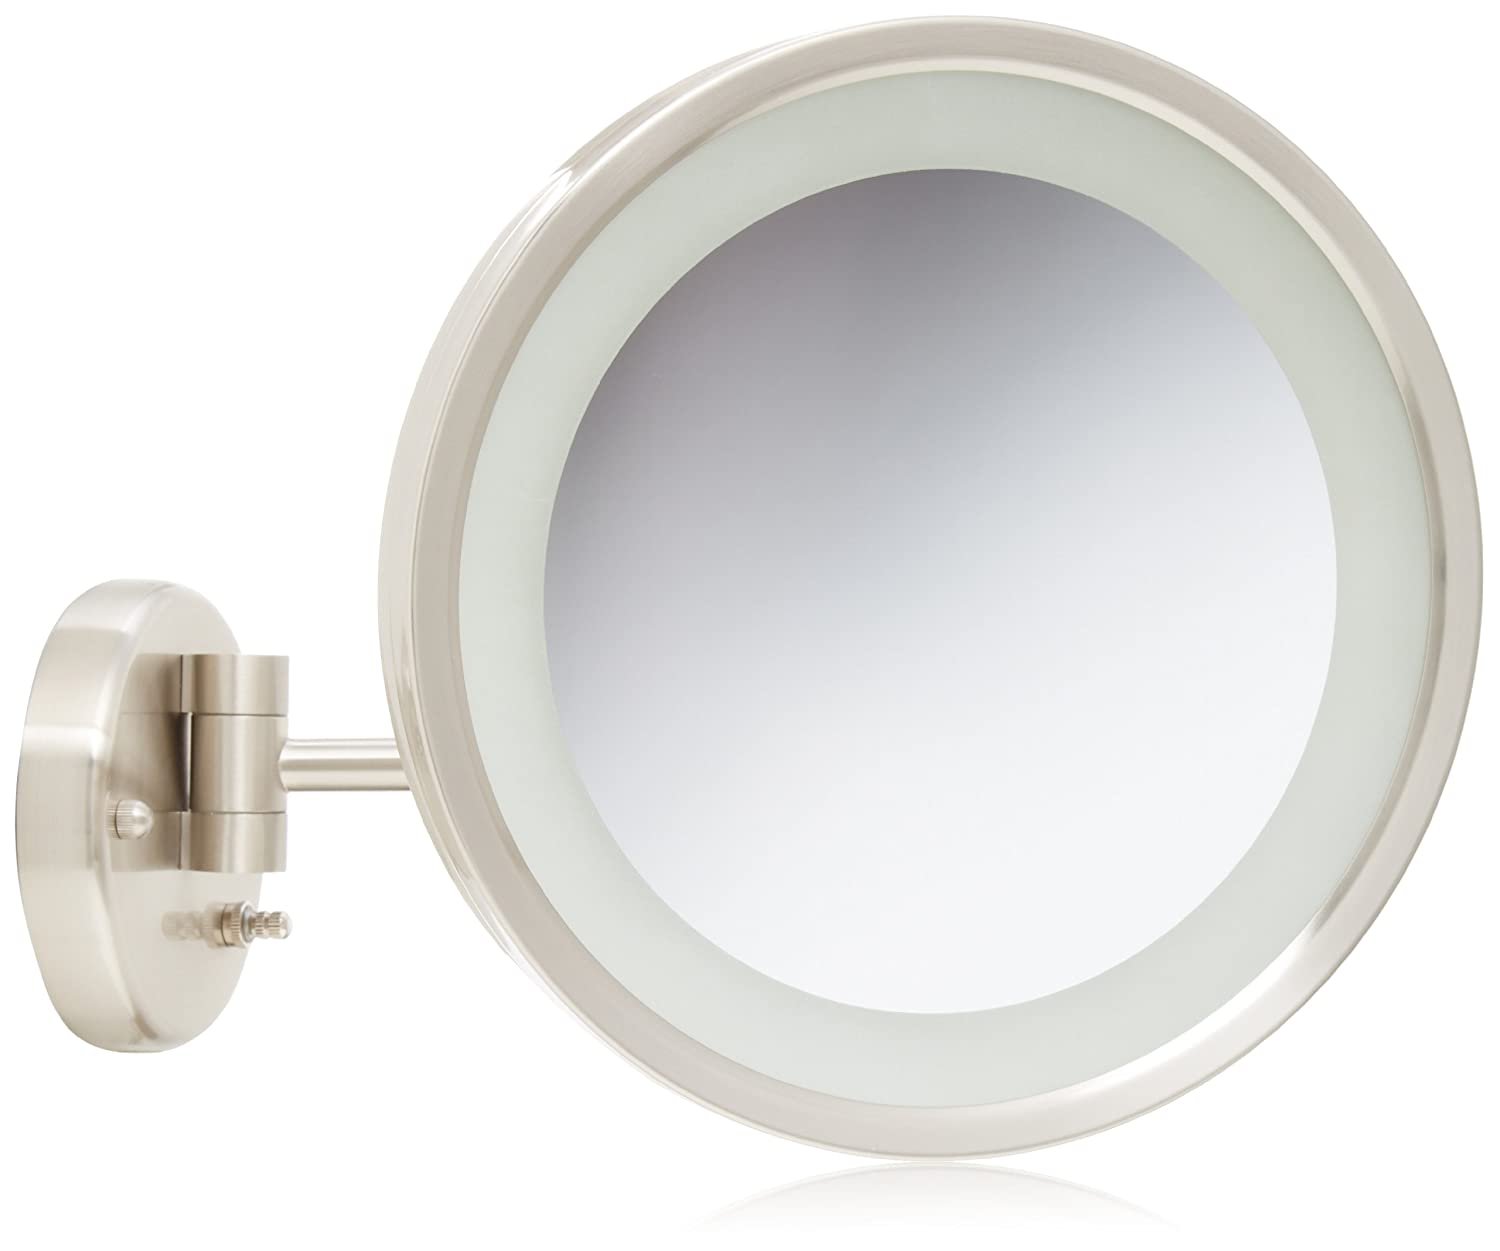 Amazon jerdon hl1016nl 95 inch led lighted wall mount amazon jerdon hl1016nl 95 inch led lighted wall mount makeup mirror with 5x magnification nickel finish personal makeup mirrors beauty amipublicfo Image collections